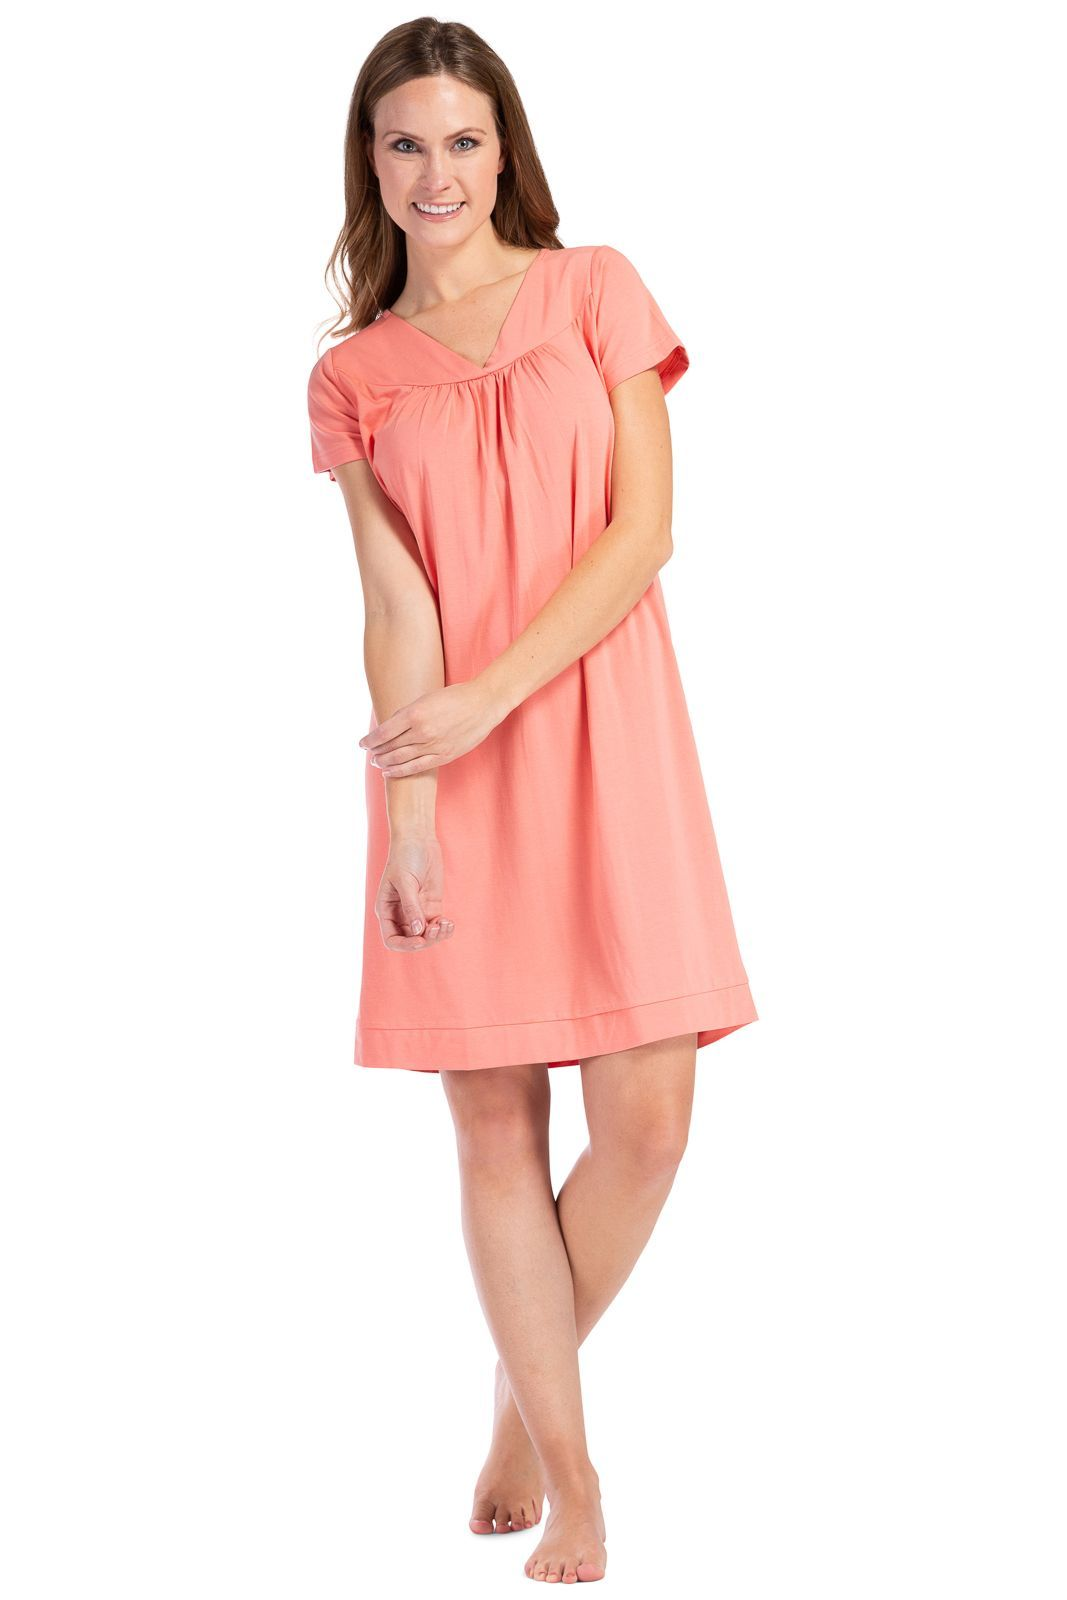 Women's Short Sleeve EcoFabric™ Nightgown - Relaxed Fit - Fishers Finery